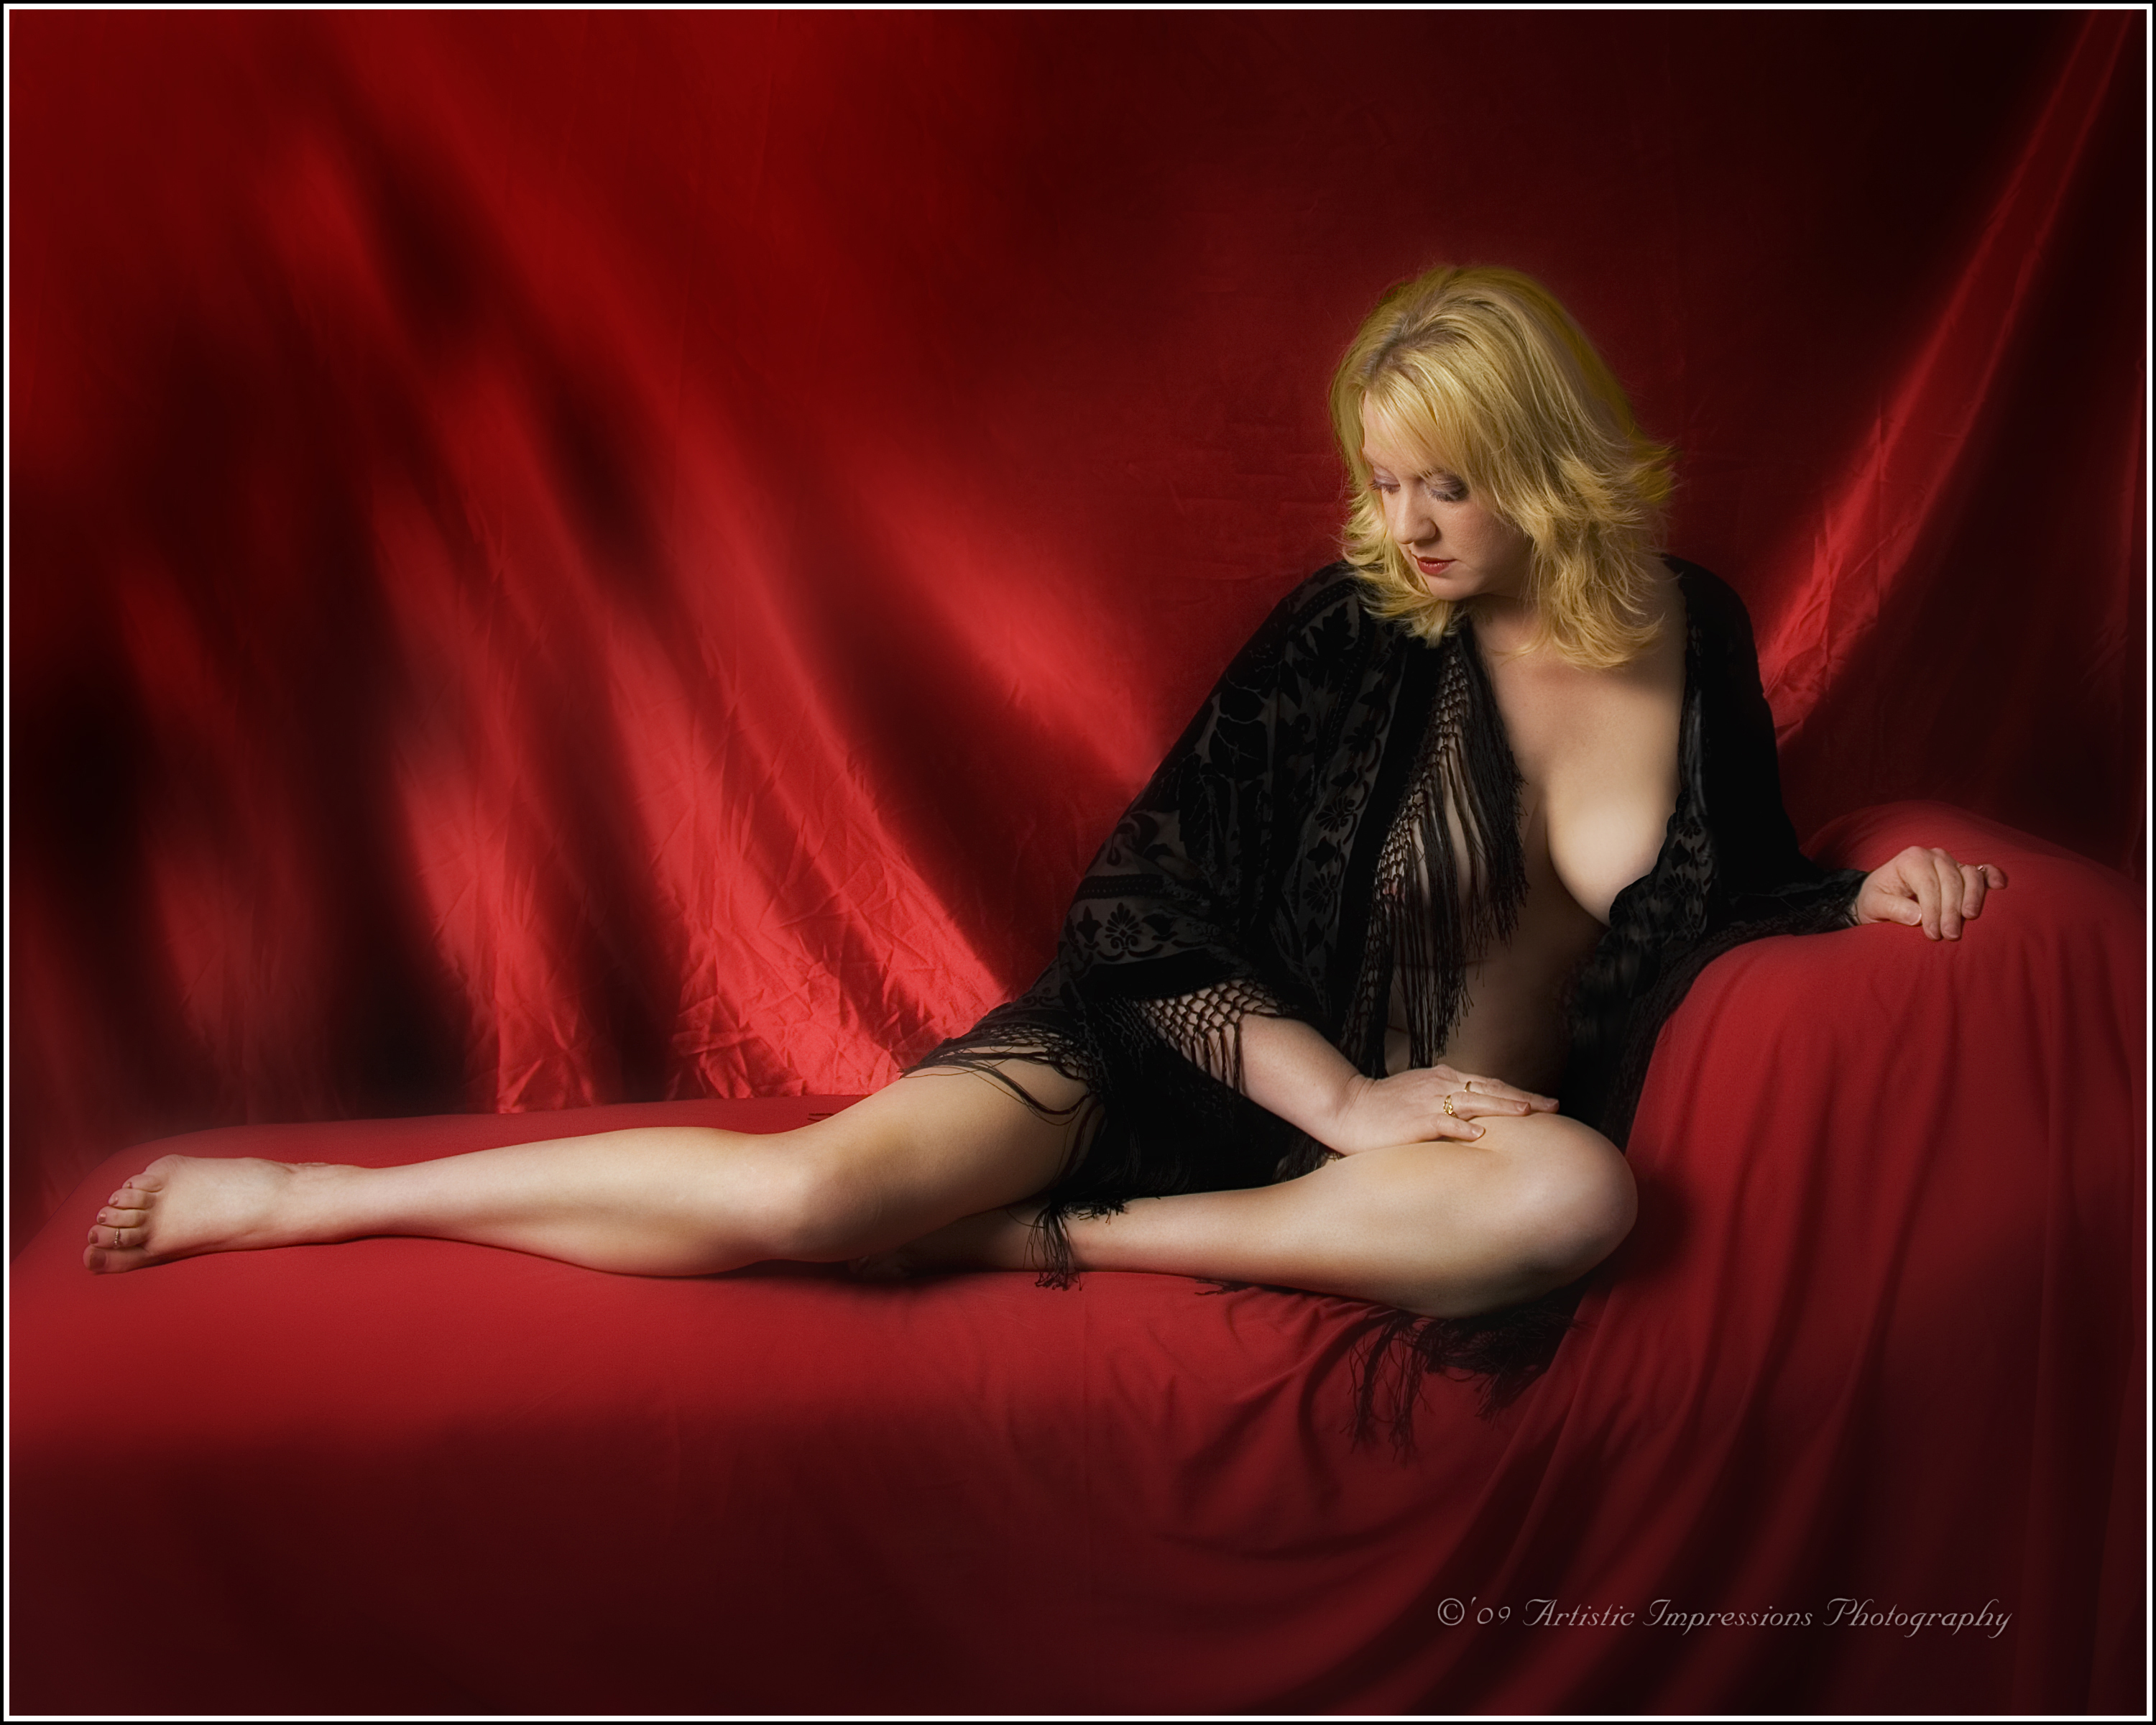 Reclining Black on Red